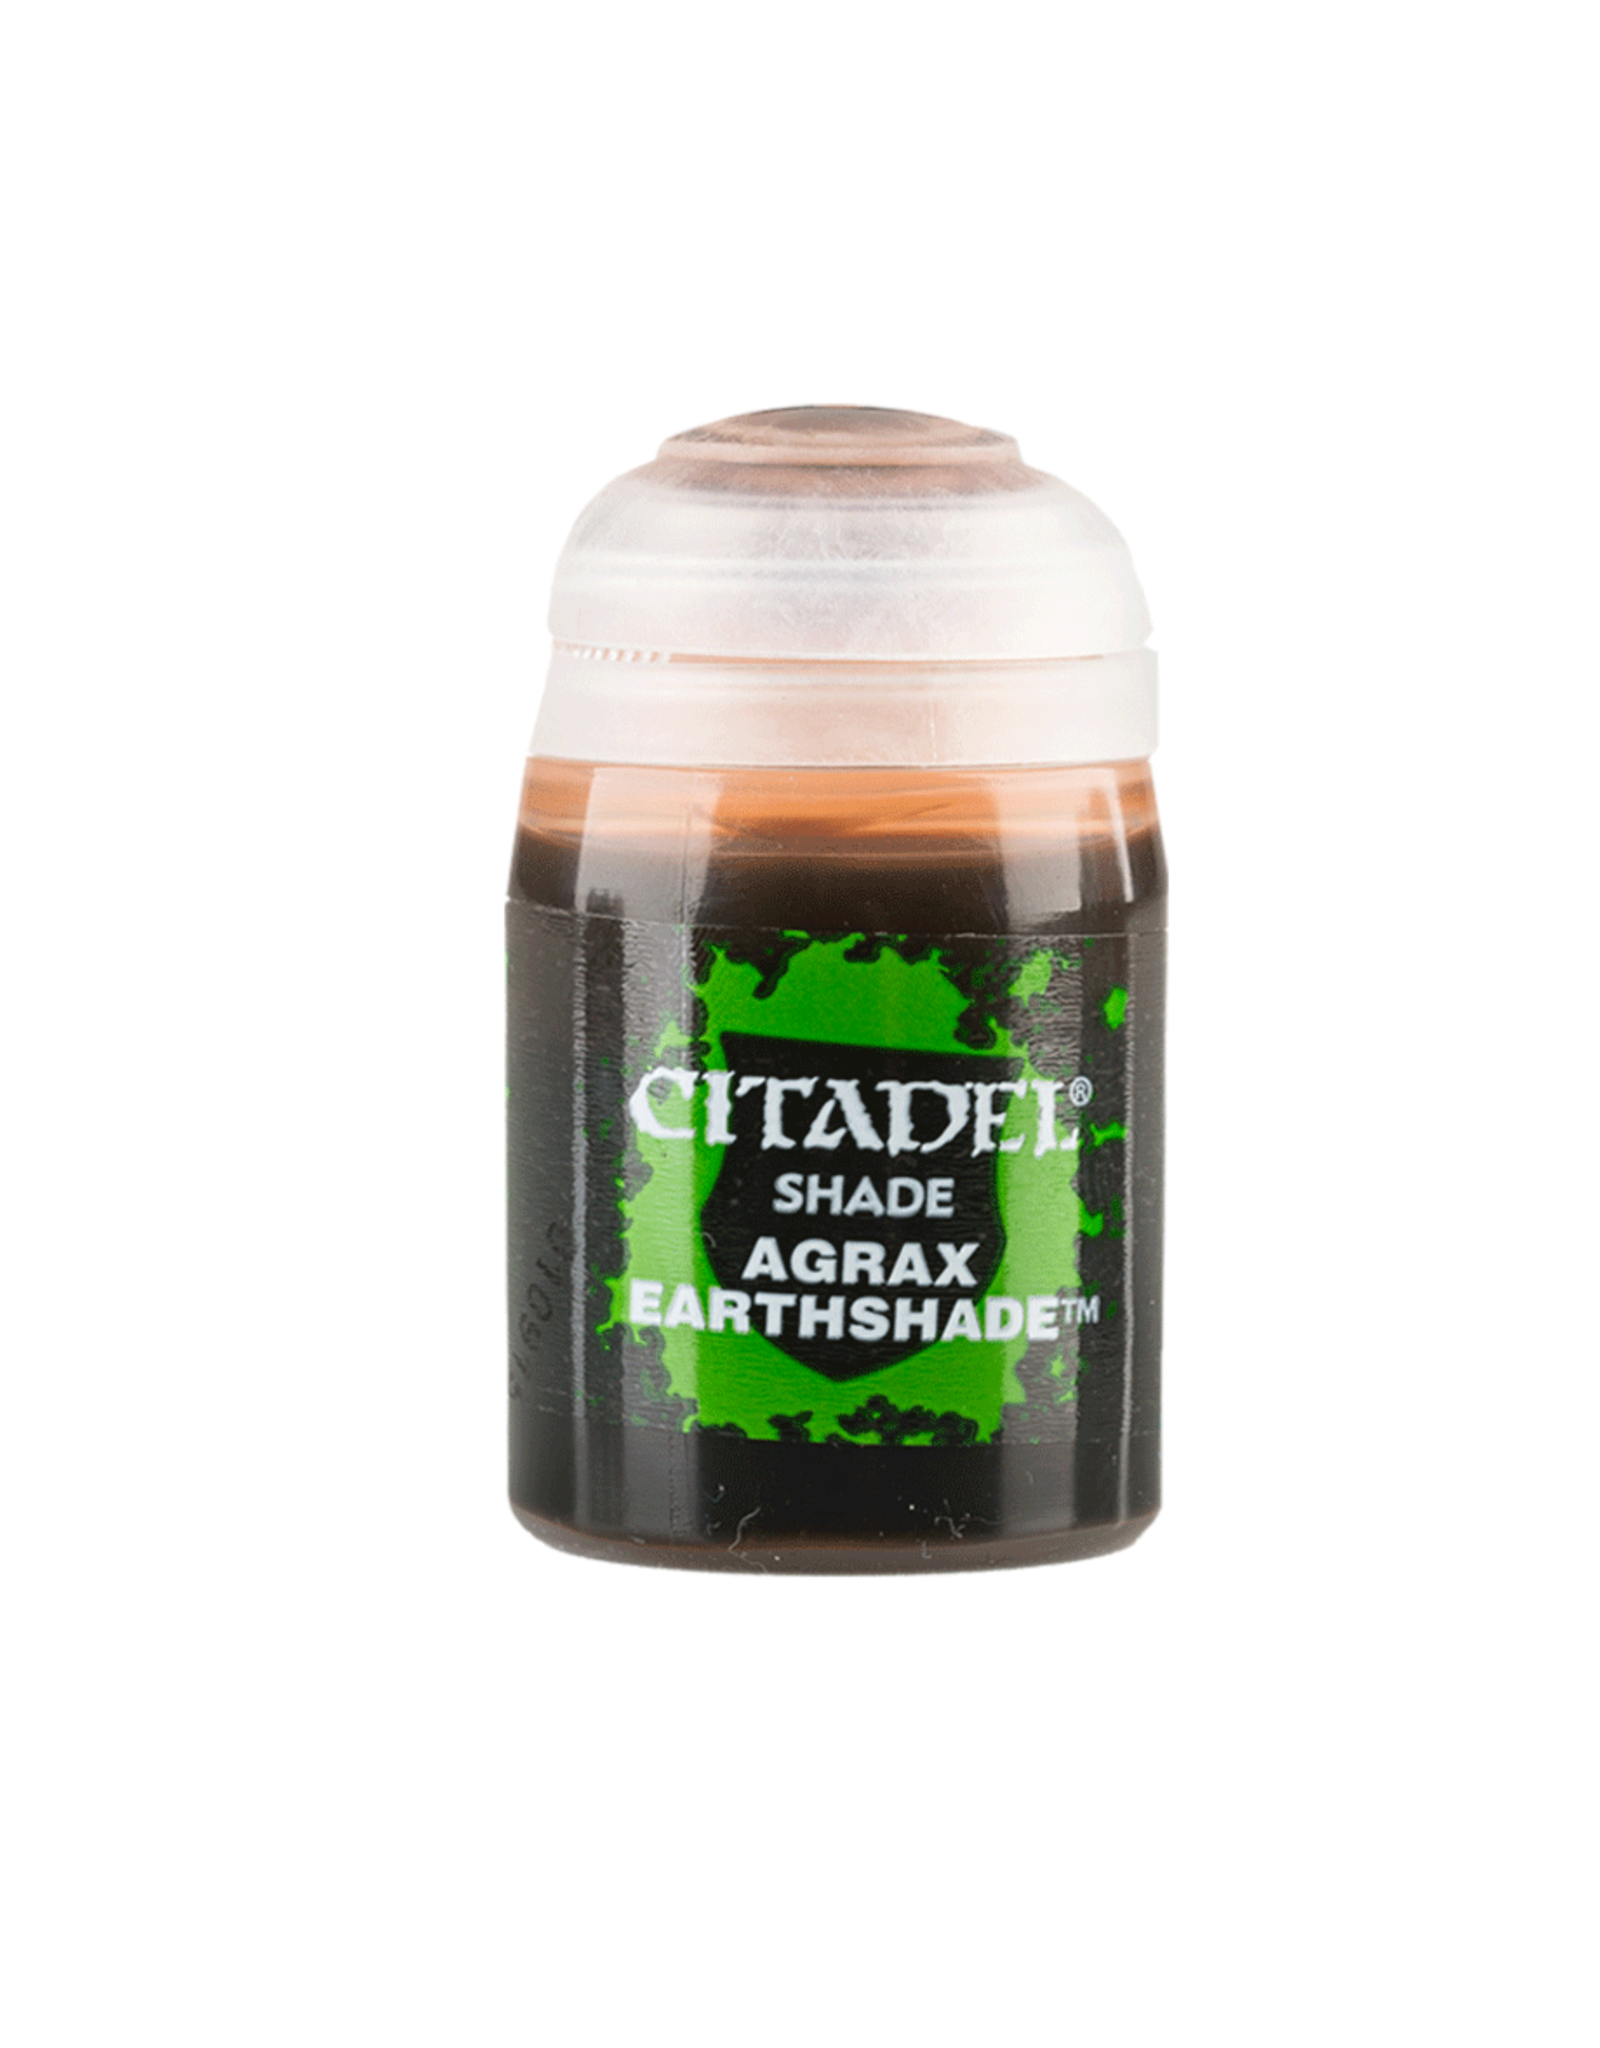 Citadel Citadel Paints Shade Paint Agrax Earthshade, Matte